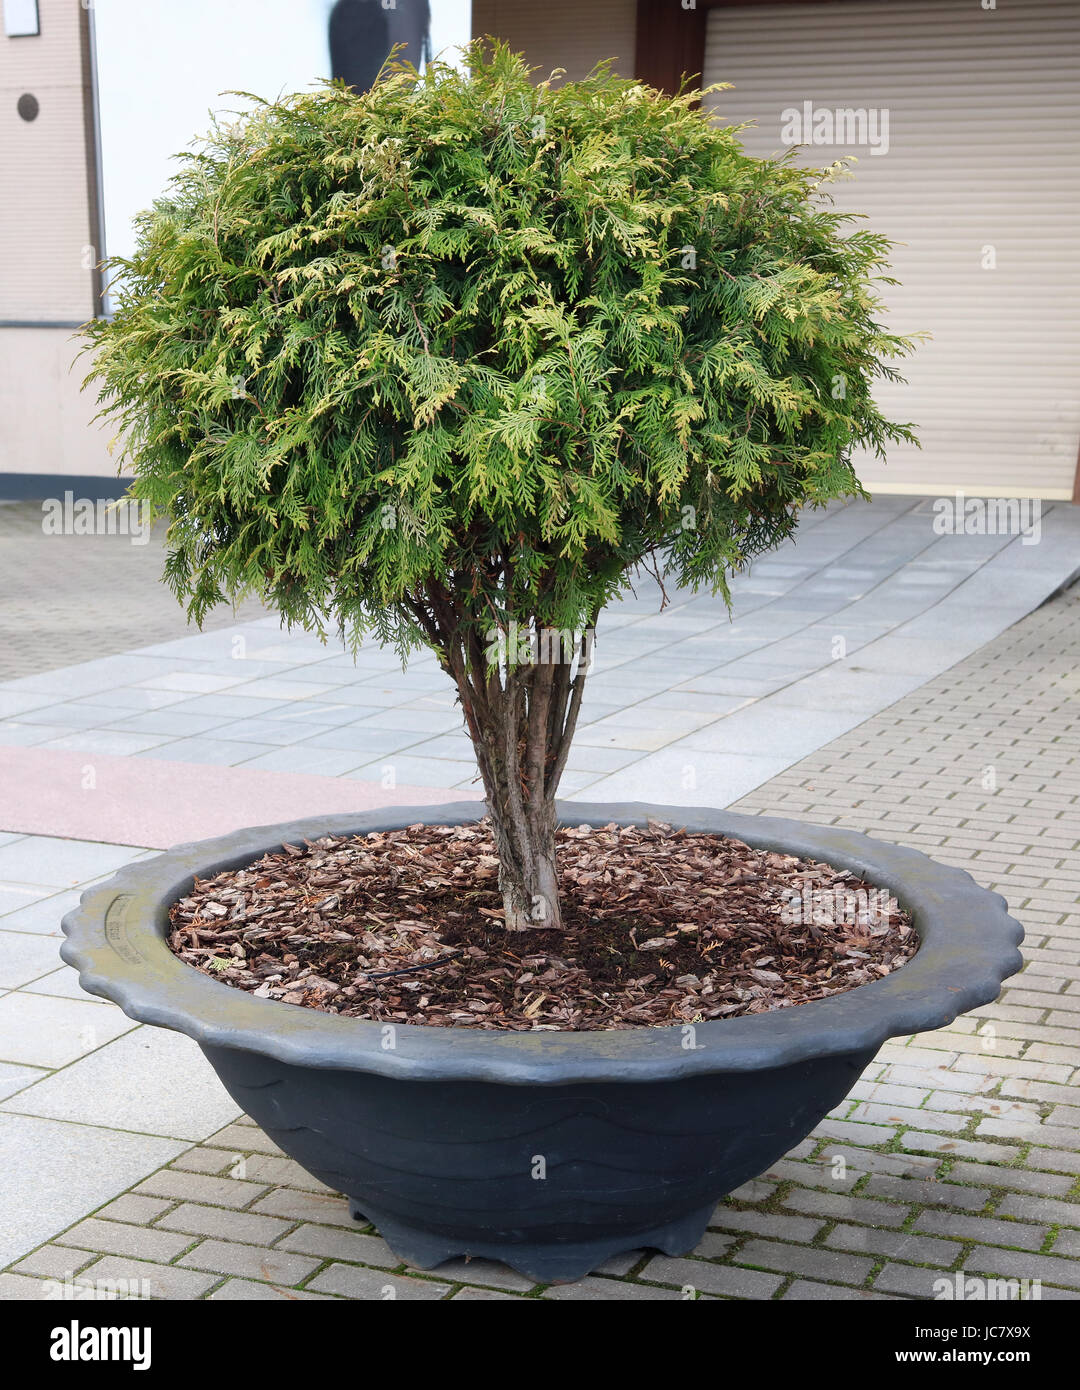 Fine small green coniferous tree in a metal pot on the city street - Stock Image